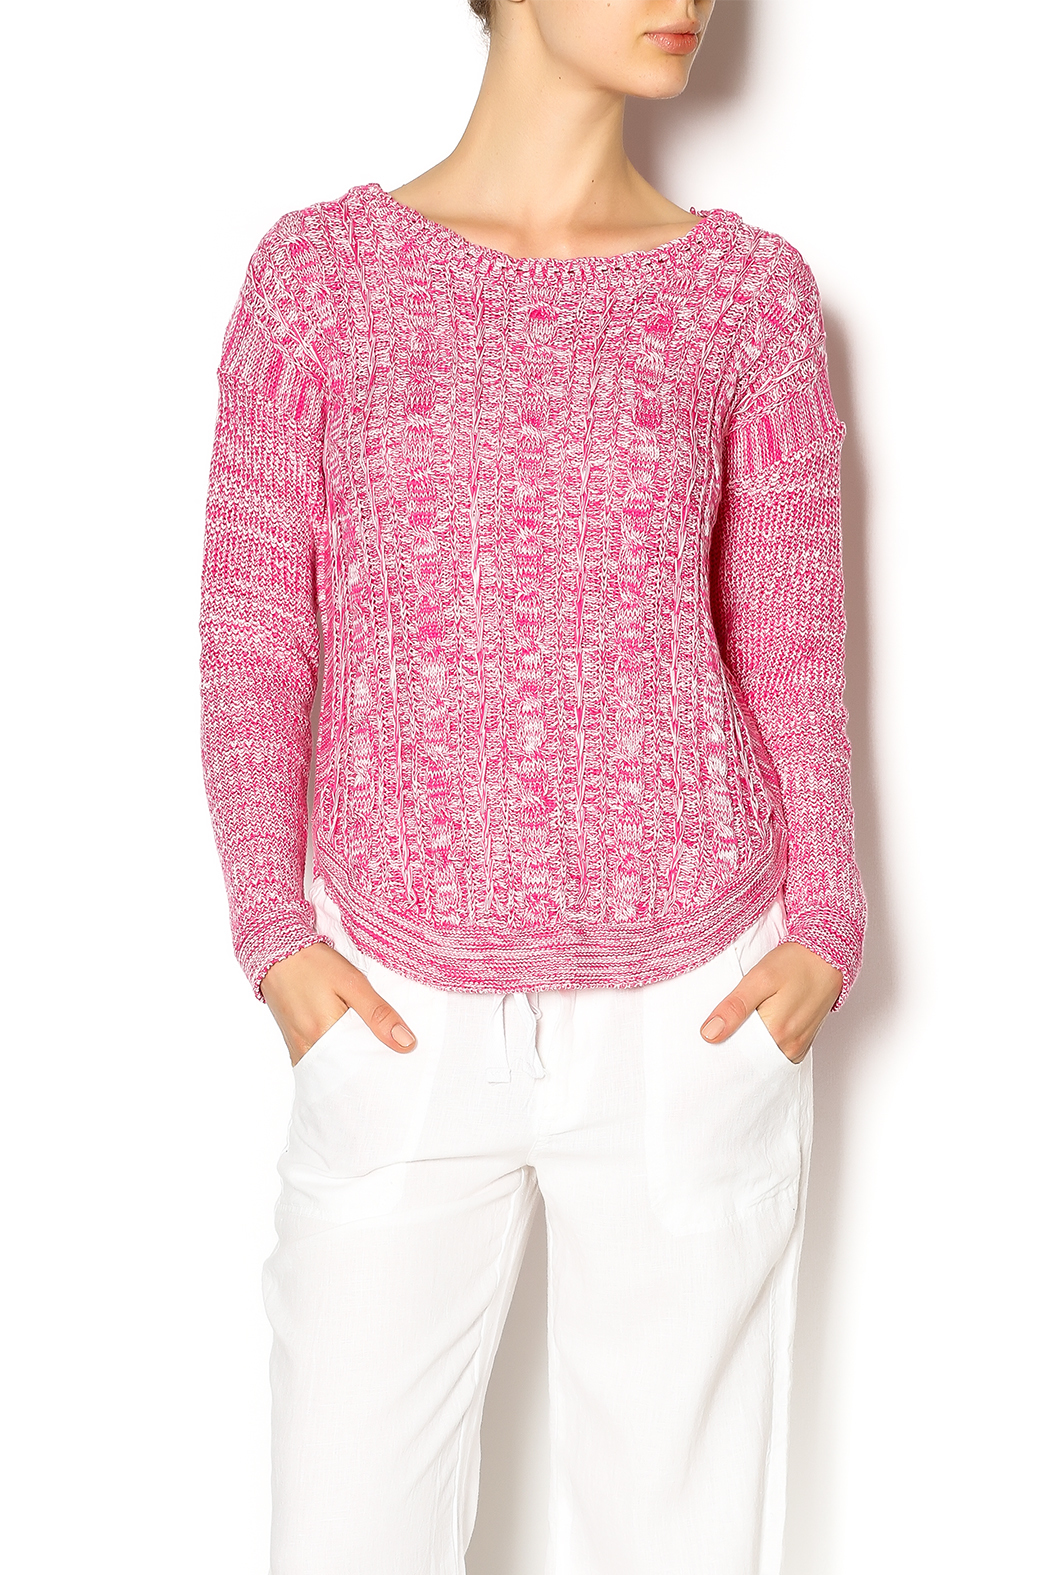 Cotton Country Pink Washable Cotton Sweater from Montana by ...